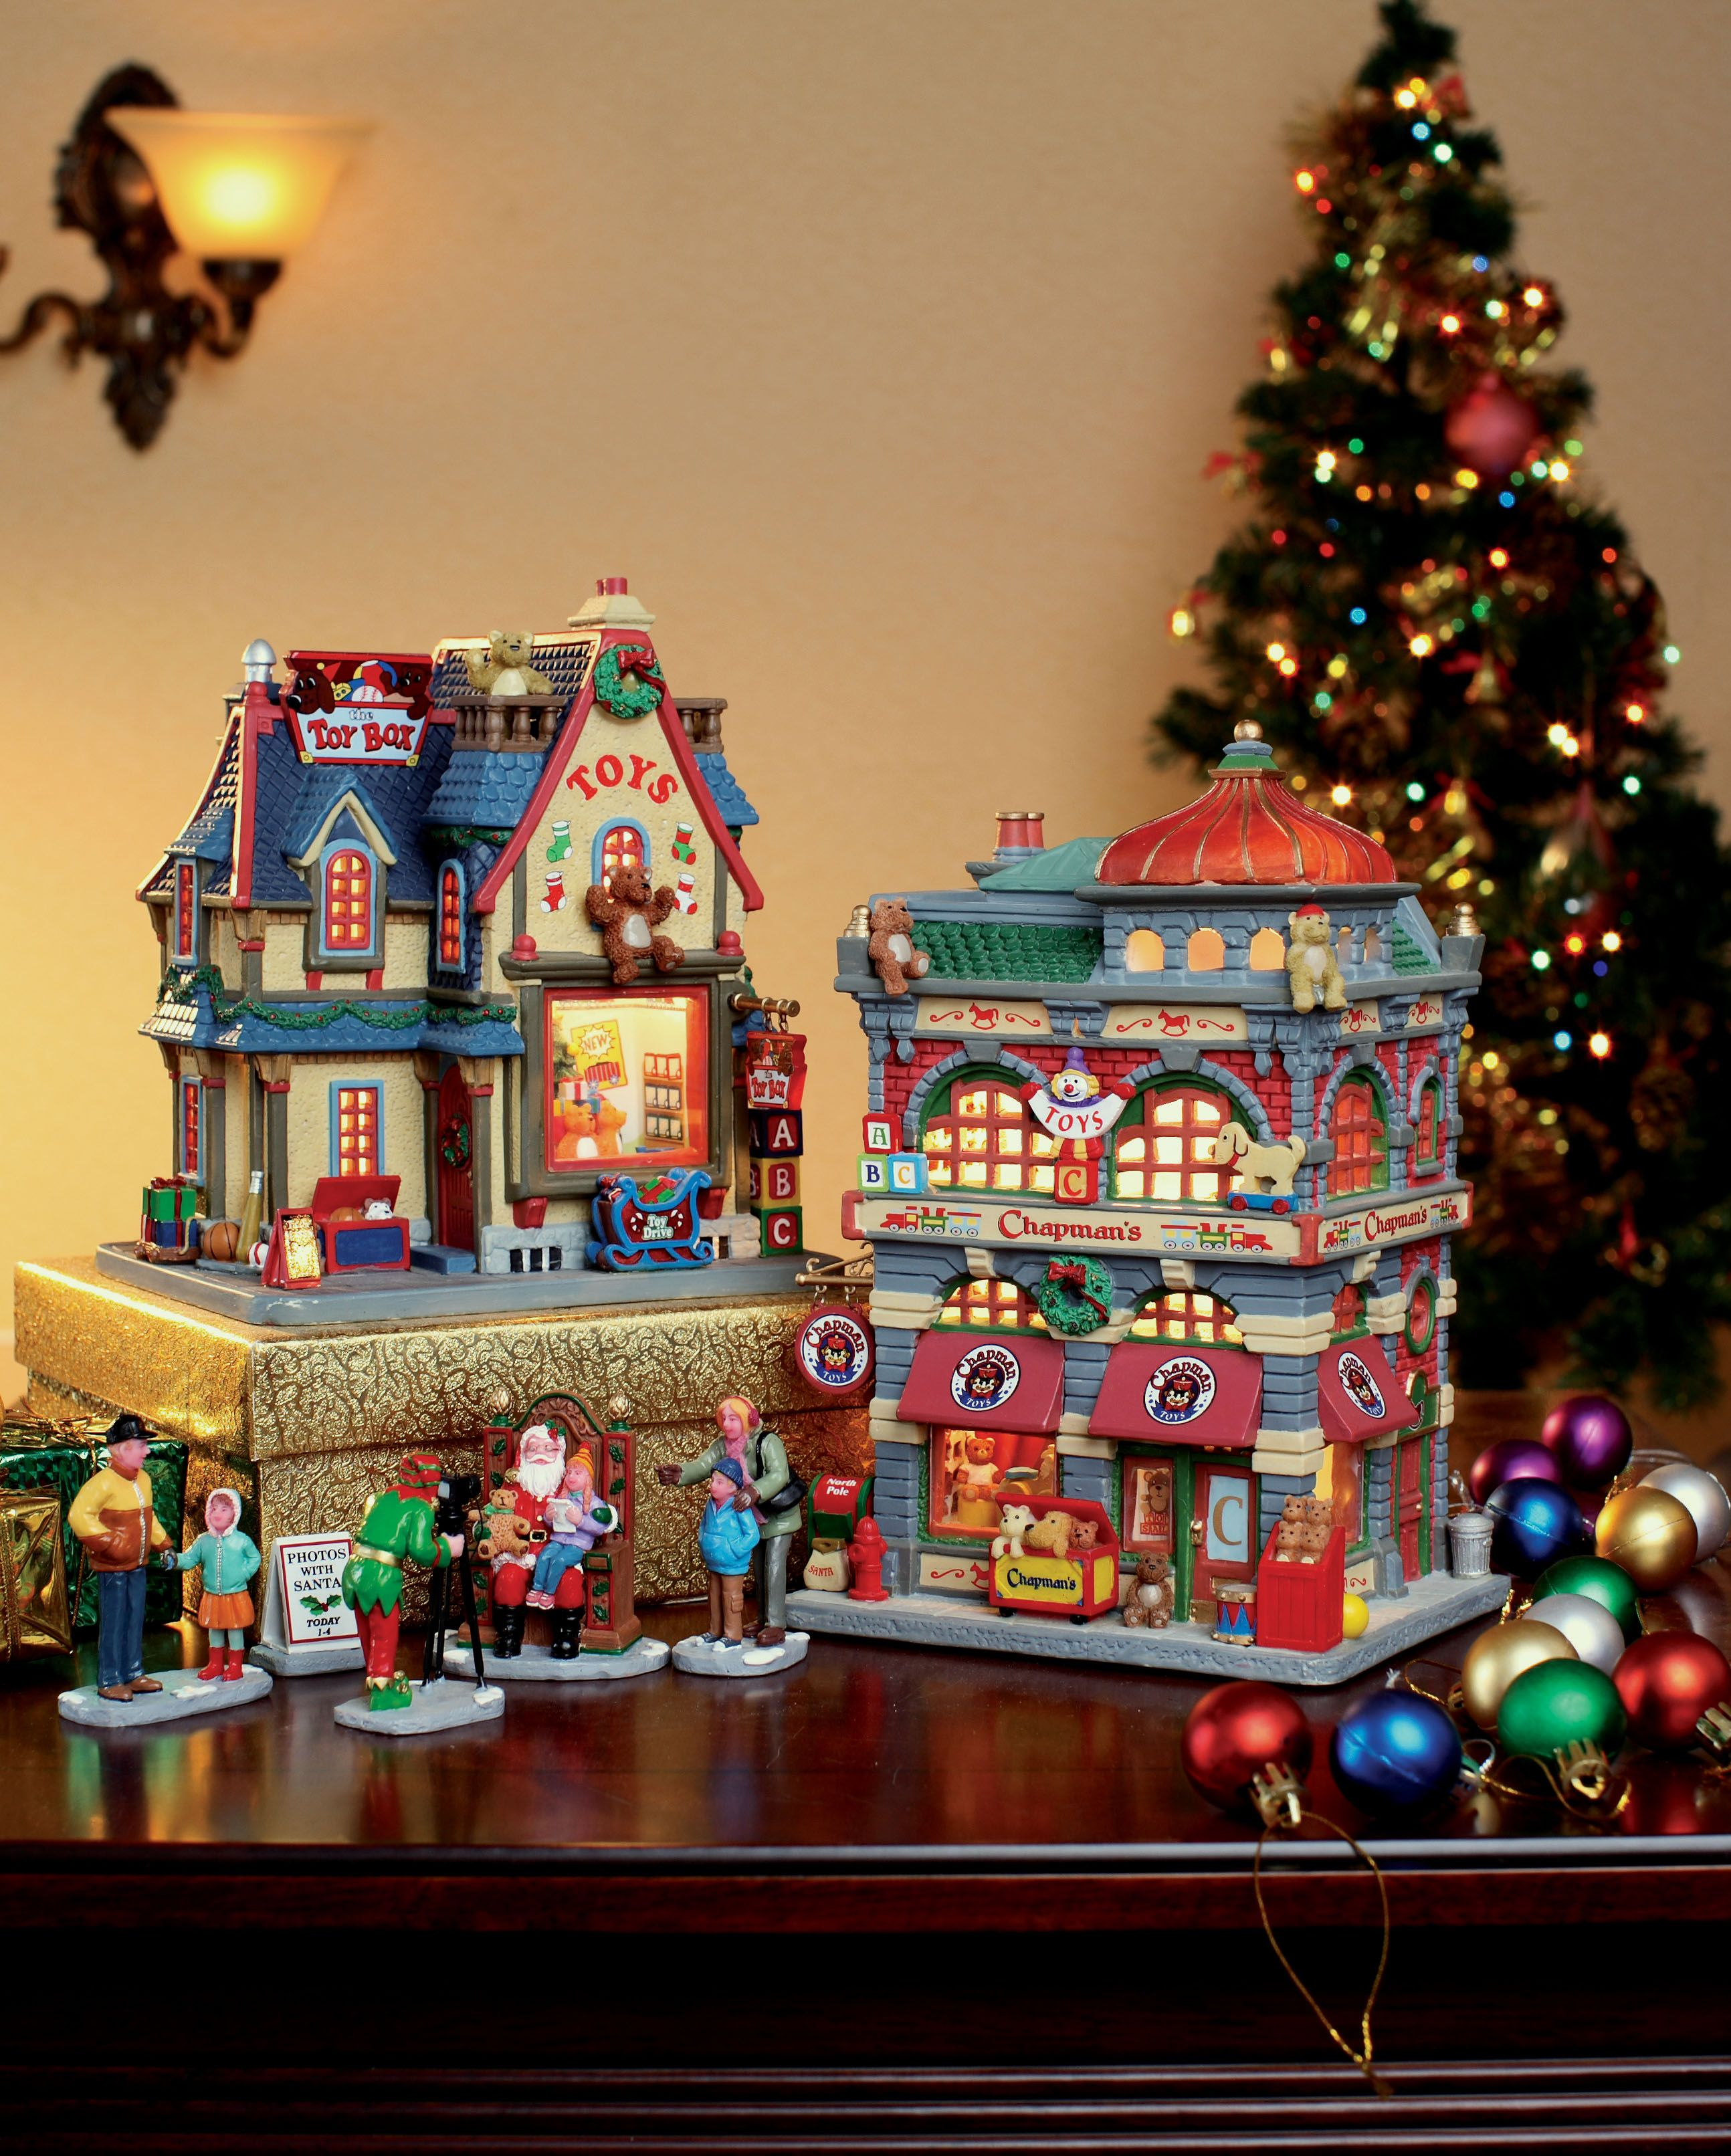 Houses Decorated For Christmas Lemax Caddington Quot Chapman Toy Shop Quot Sku 25371 And Quot The